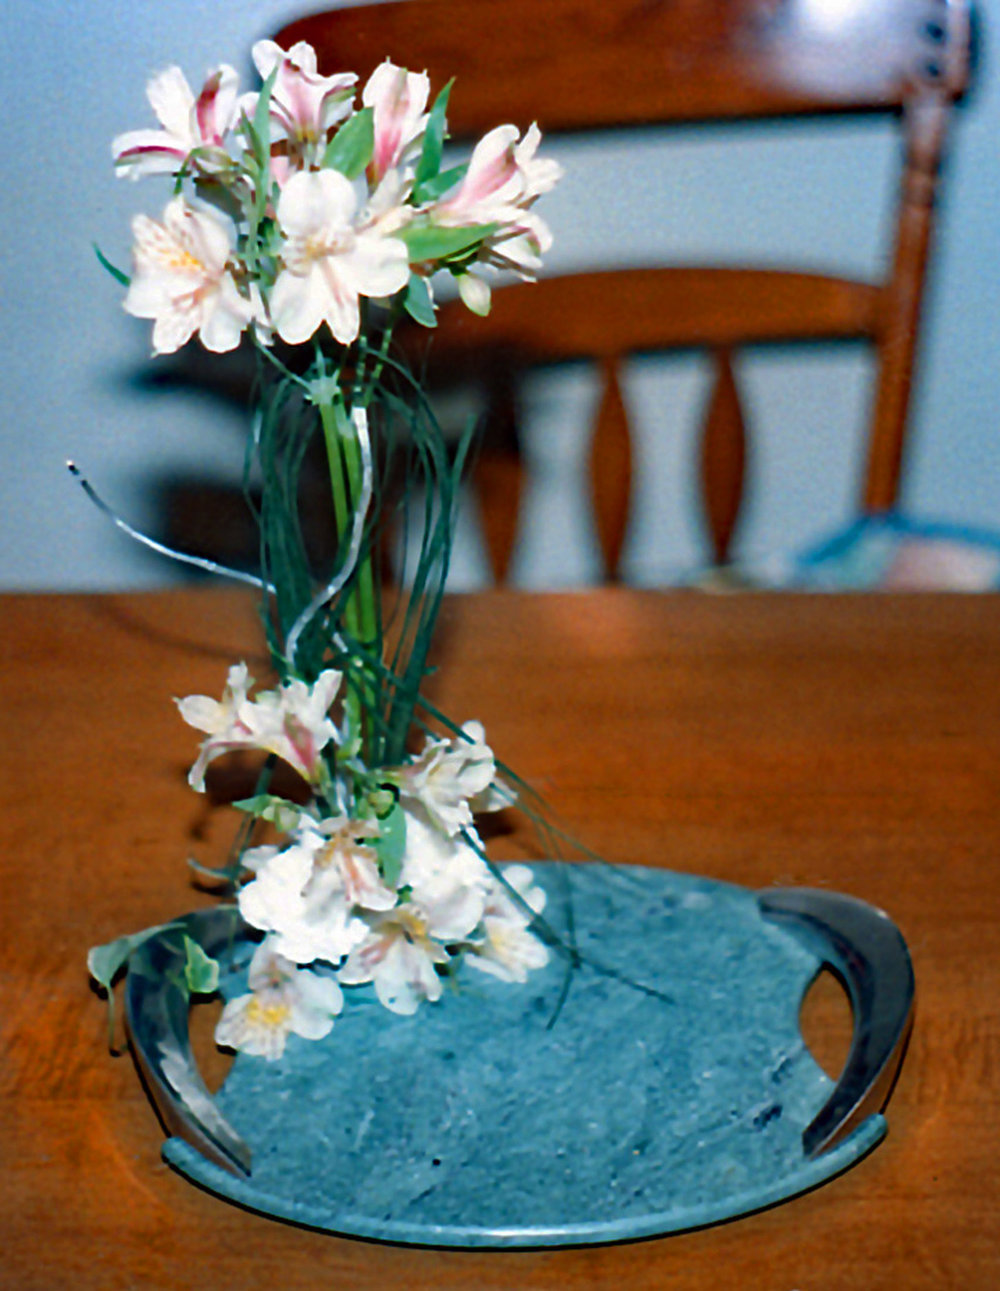 reception head table / centerpieces - fresh flowers, marble tray